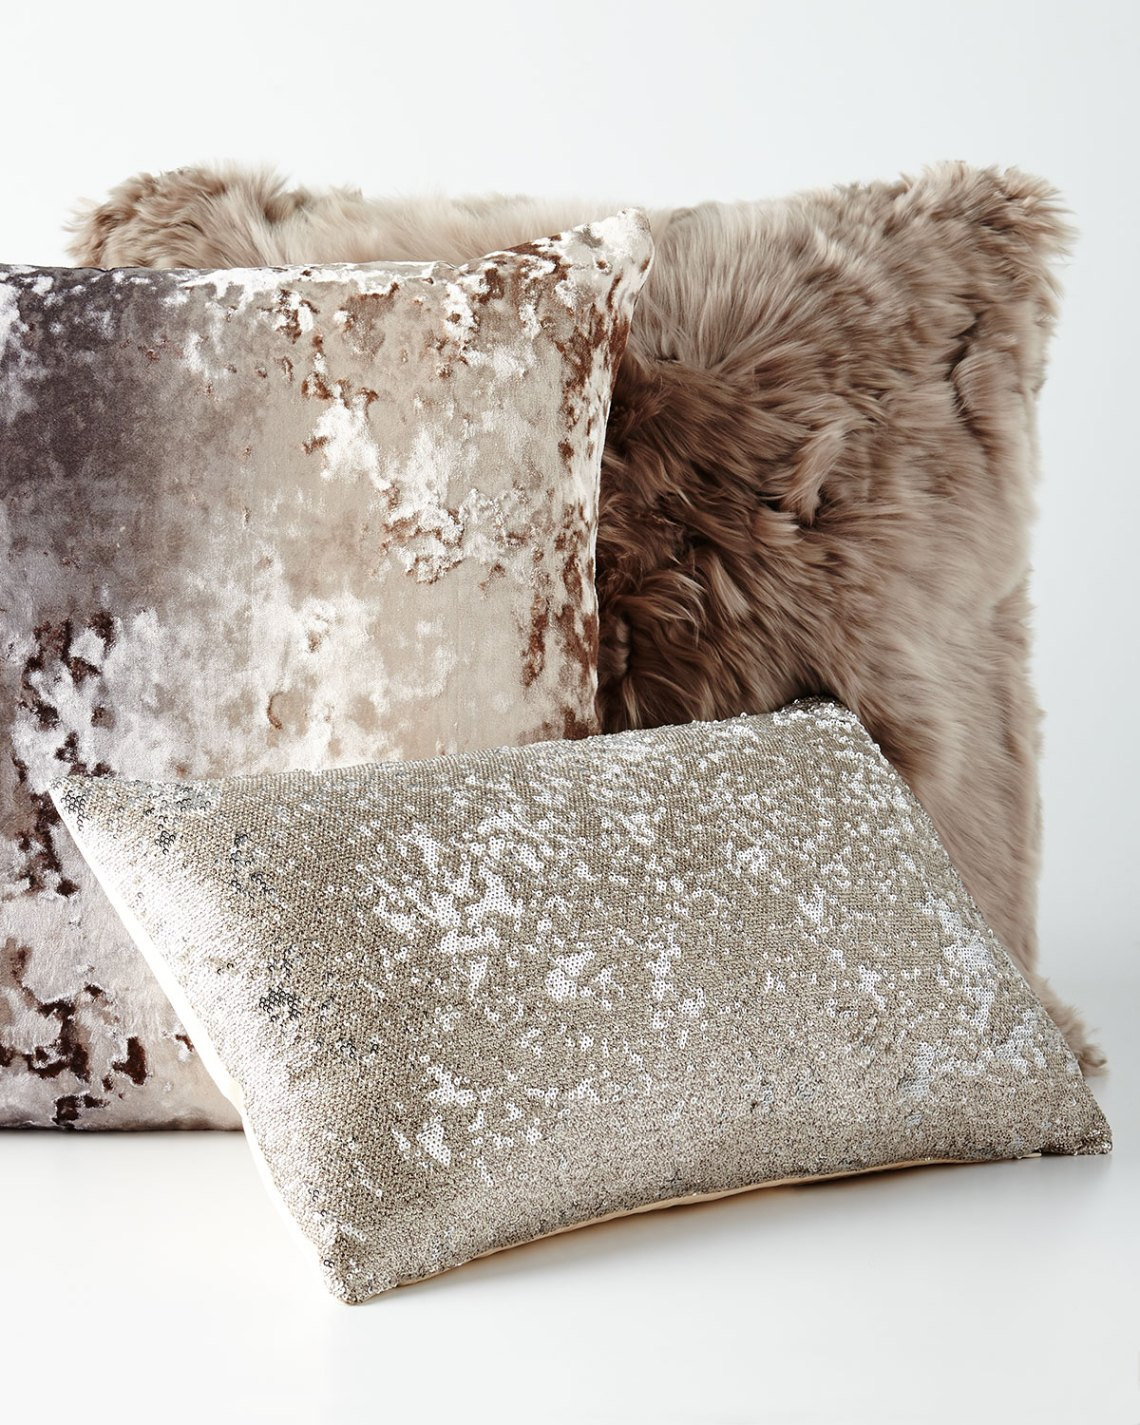 Neutral Cushions Texture